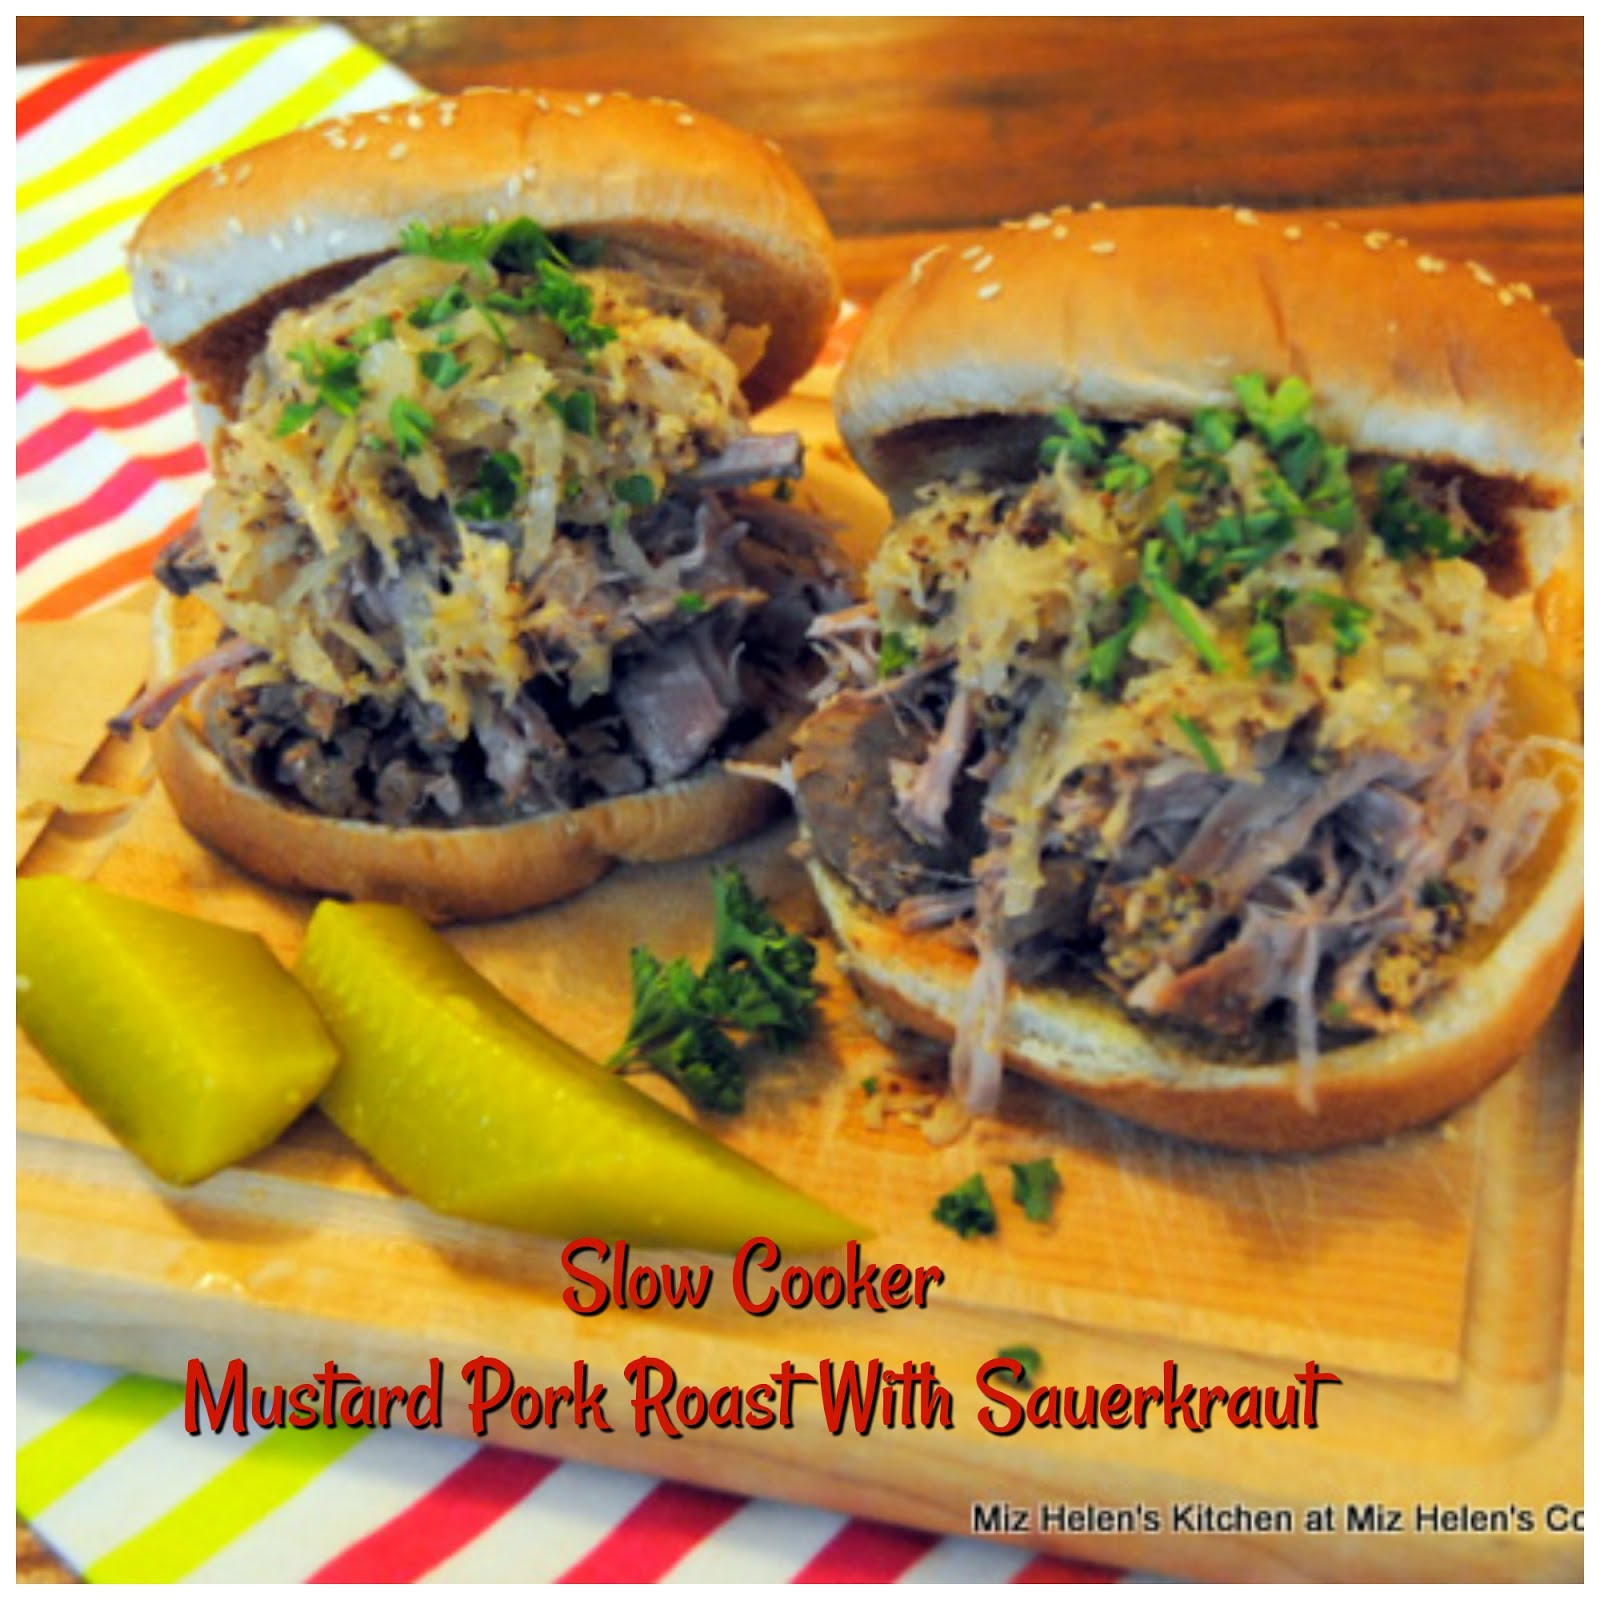 Slow Cooker Mustard Pork Roast & Sauerkraut